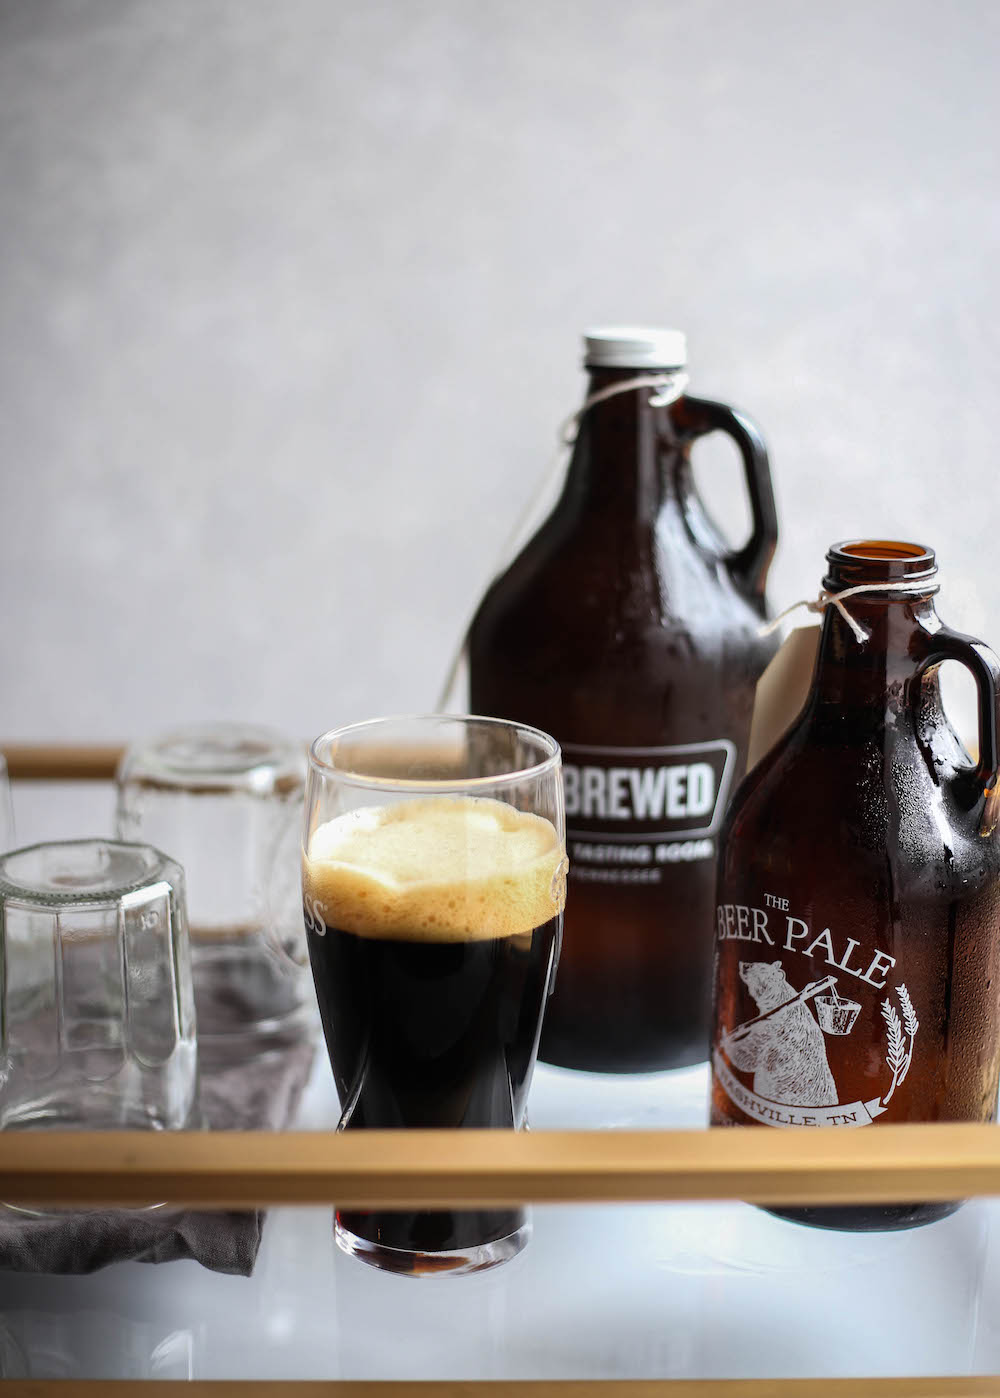 Growler of Beer